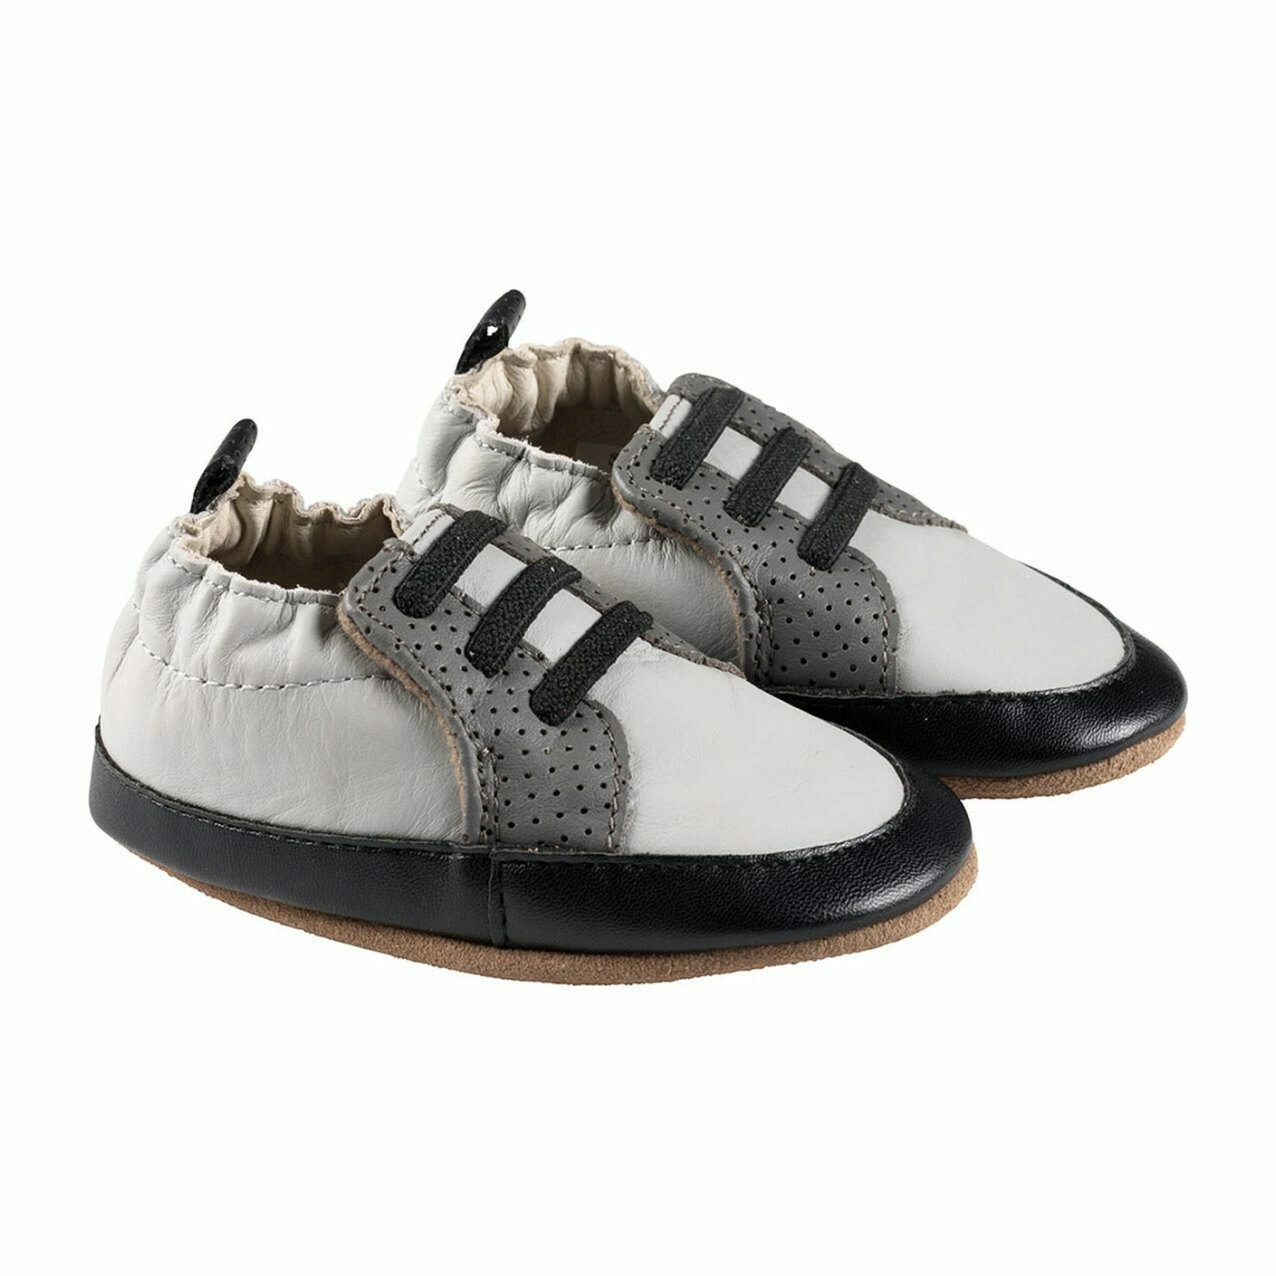 Robeez Trendy trainer grey 18-24